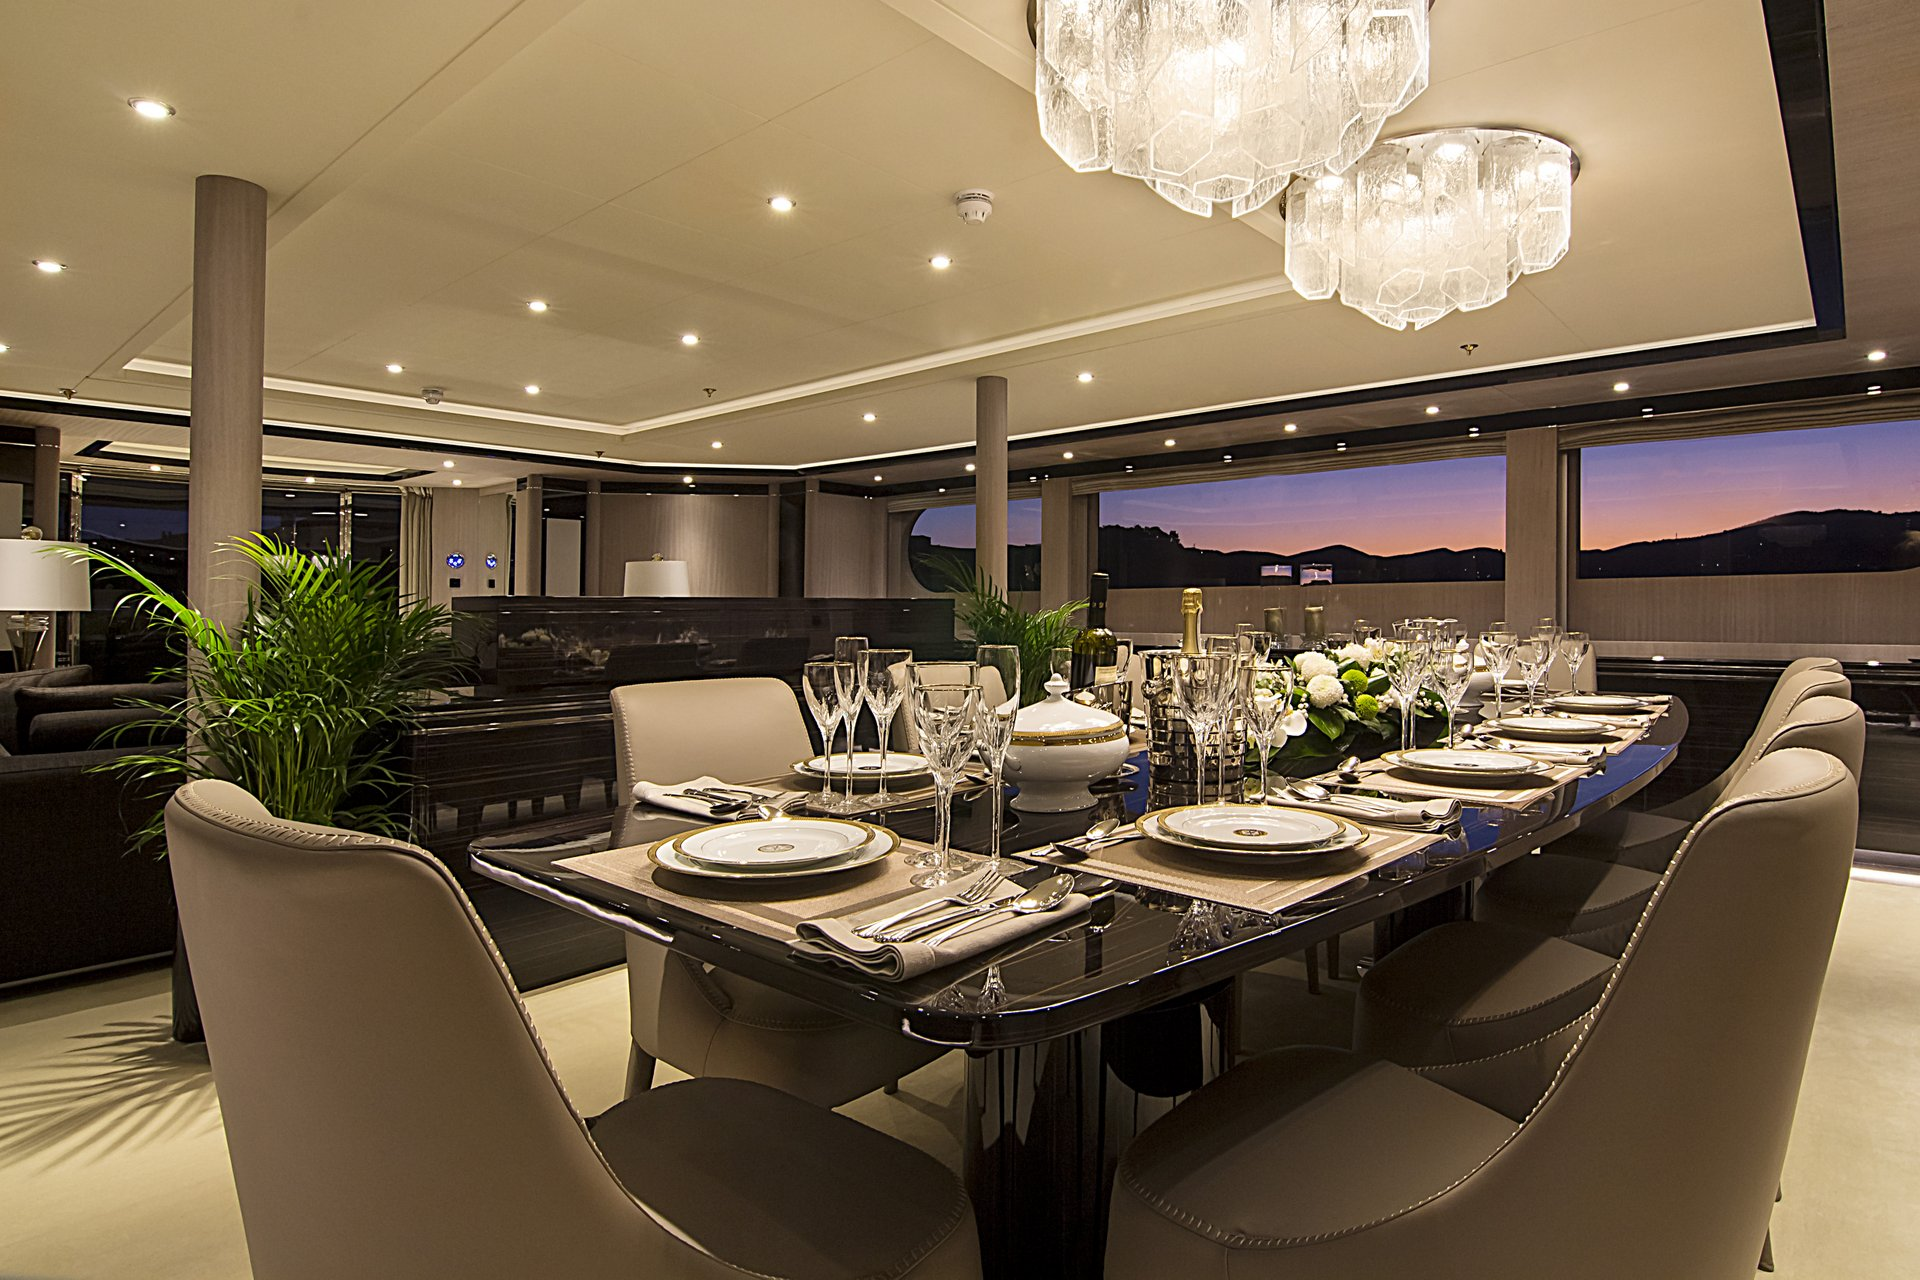 m/y invader yacht for charter set indoor dining table